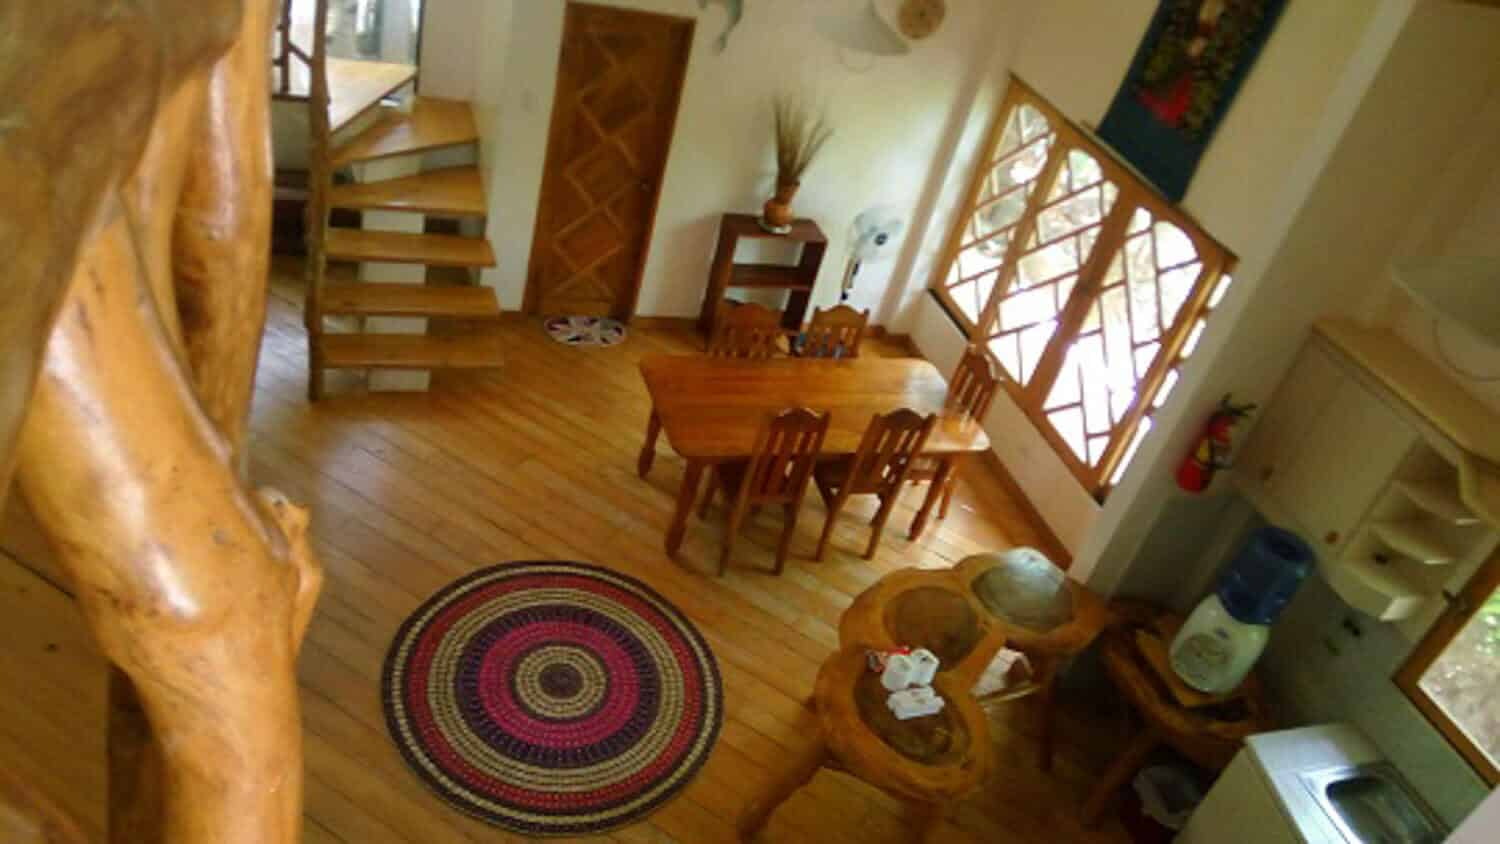 Living room, Stairs, Chairs and Tables, Mat, Sink,WaterDispenser, Cabinets, Windows , Decorations,